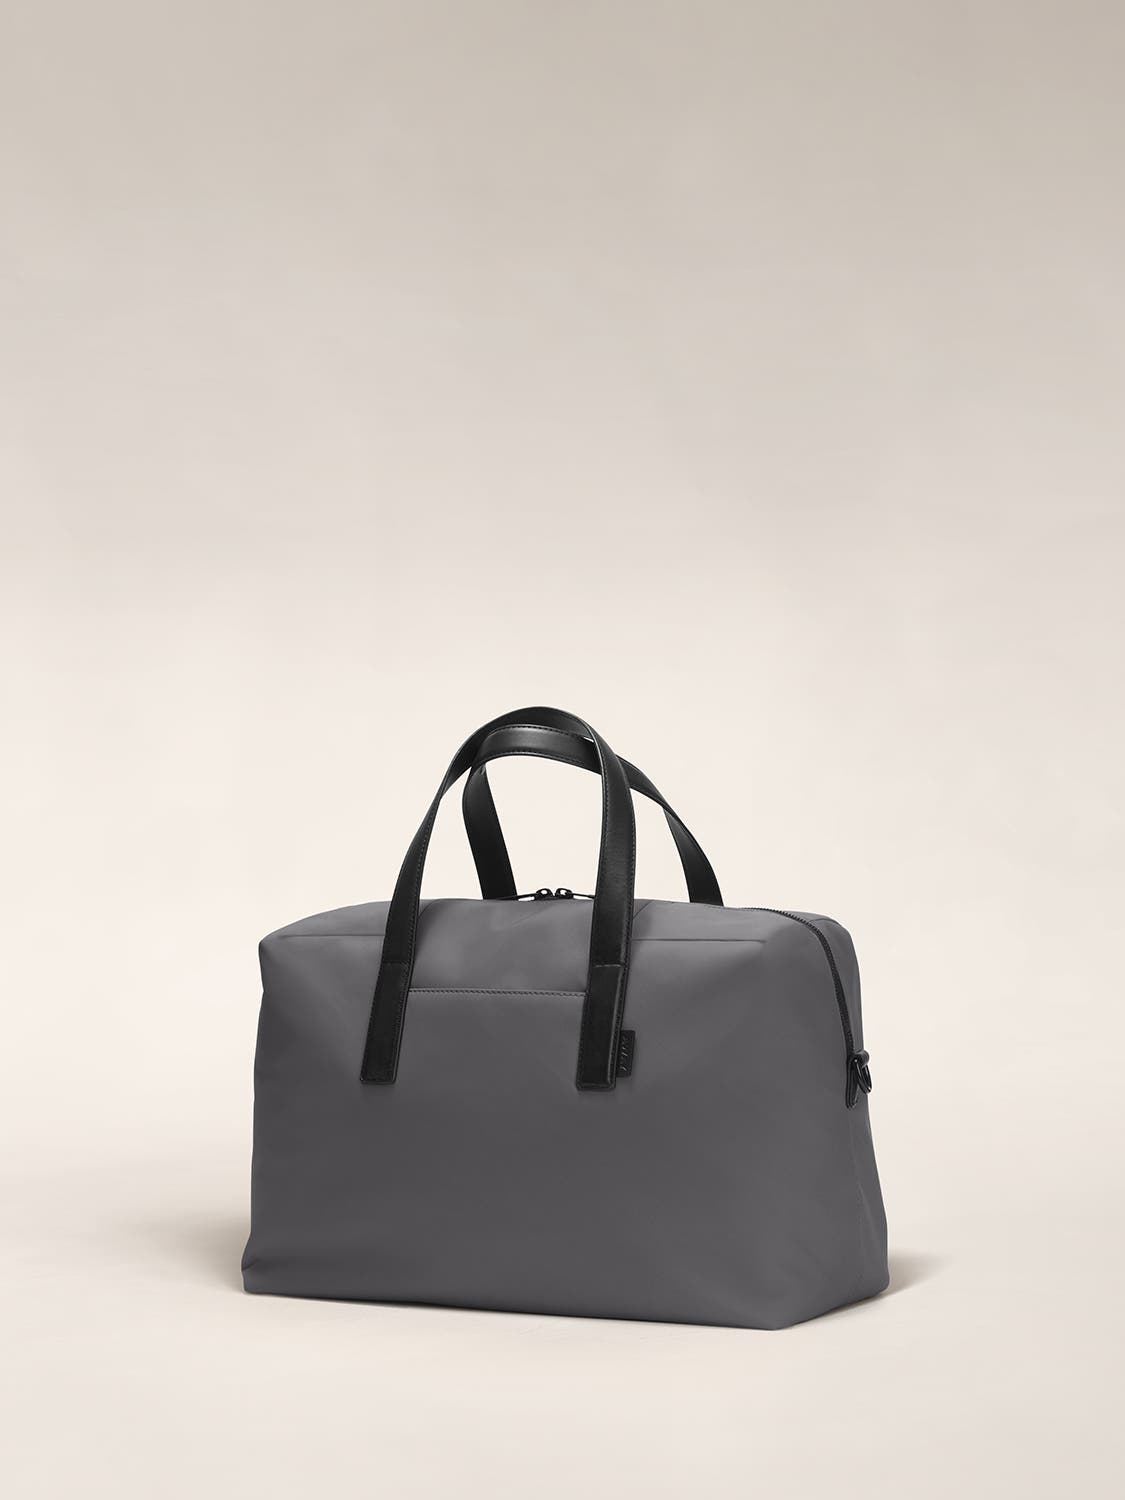 Angled view of a gray duffle bag with crossed straps.